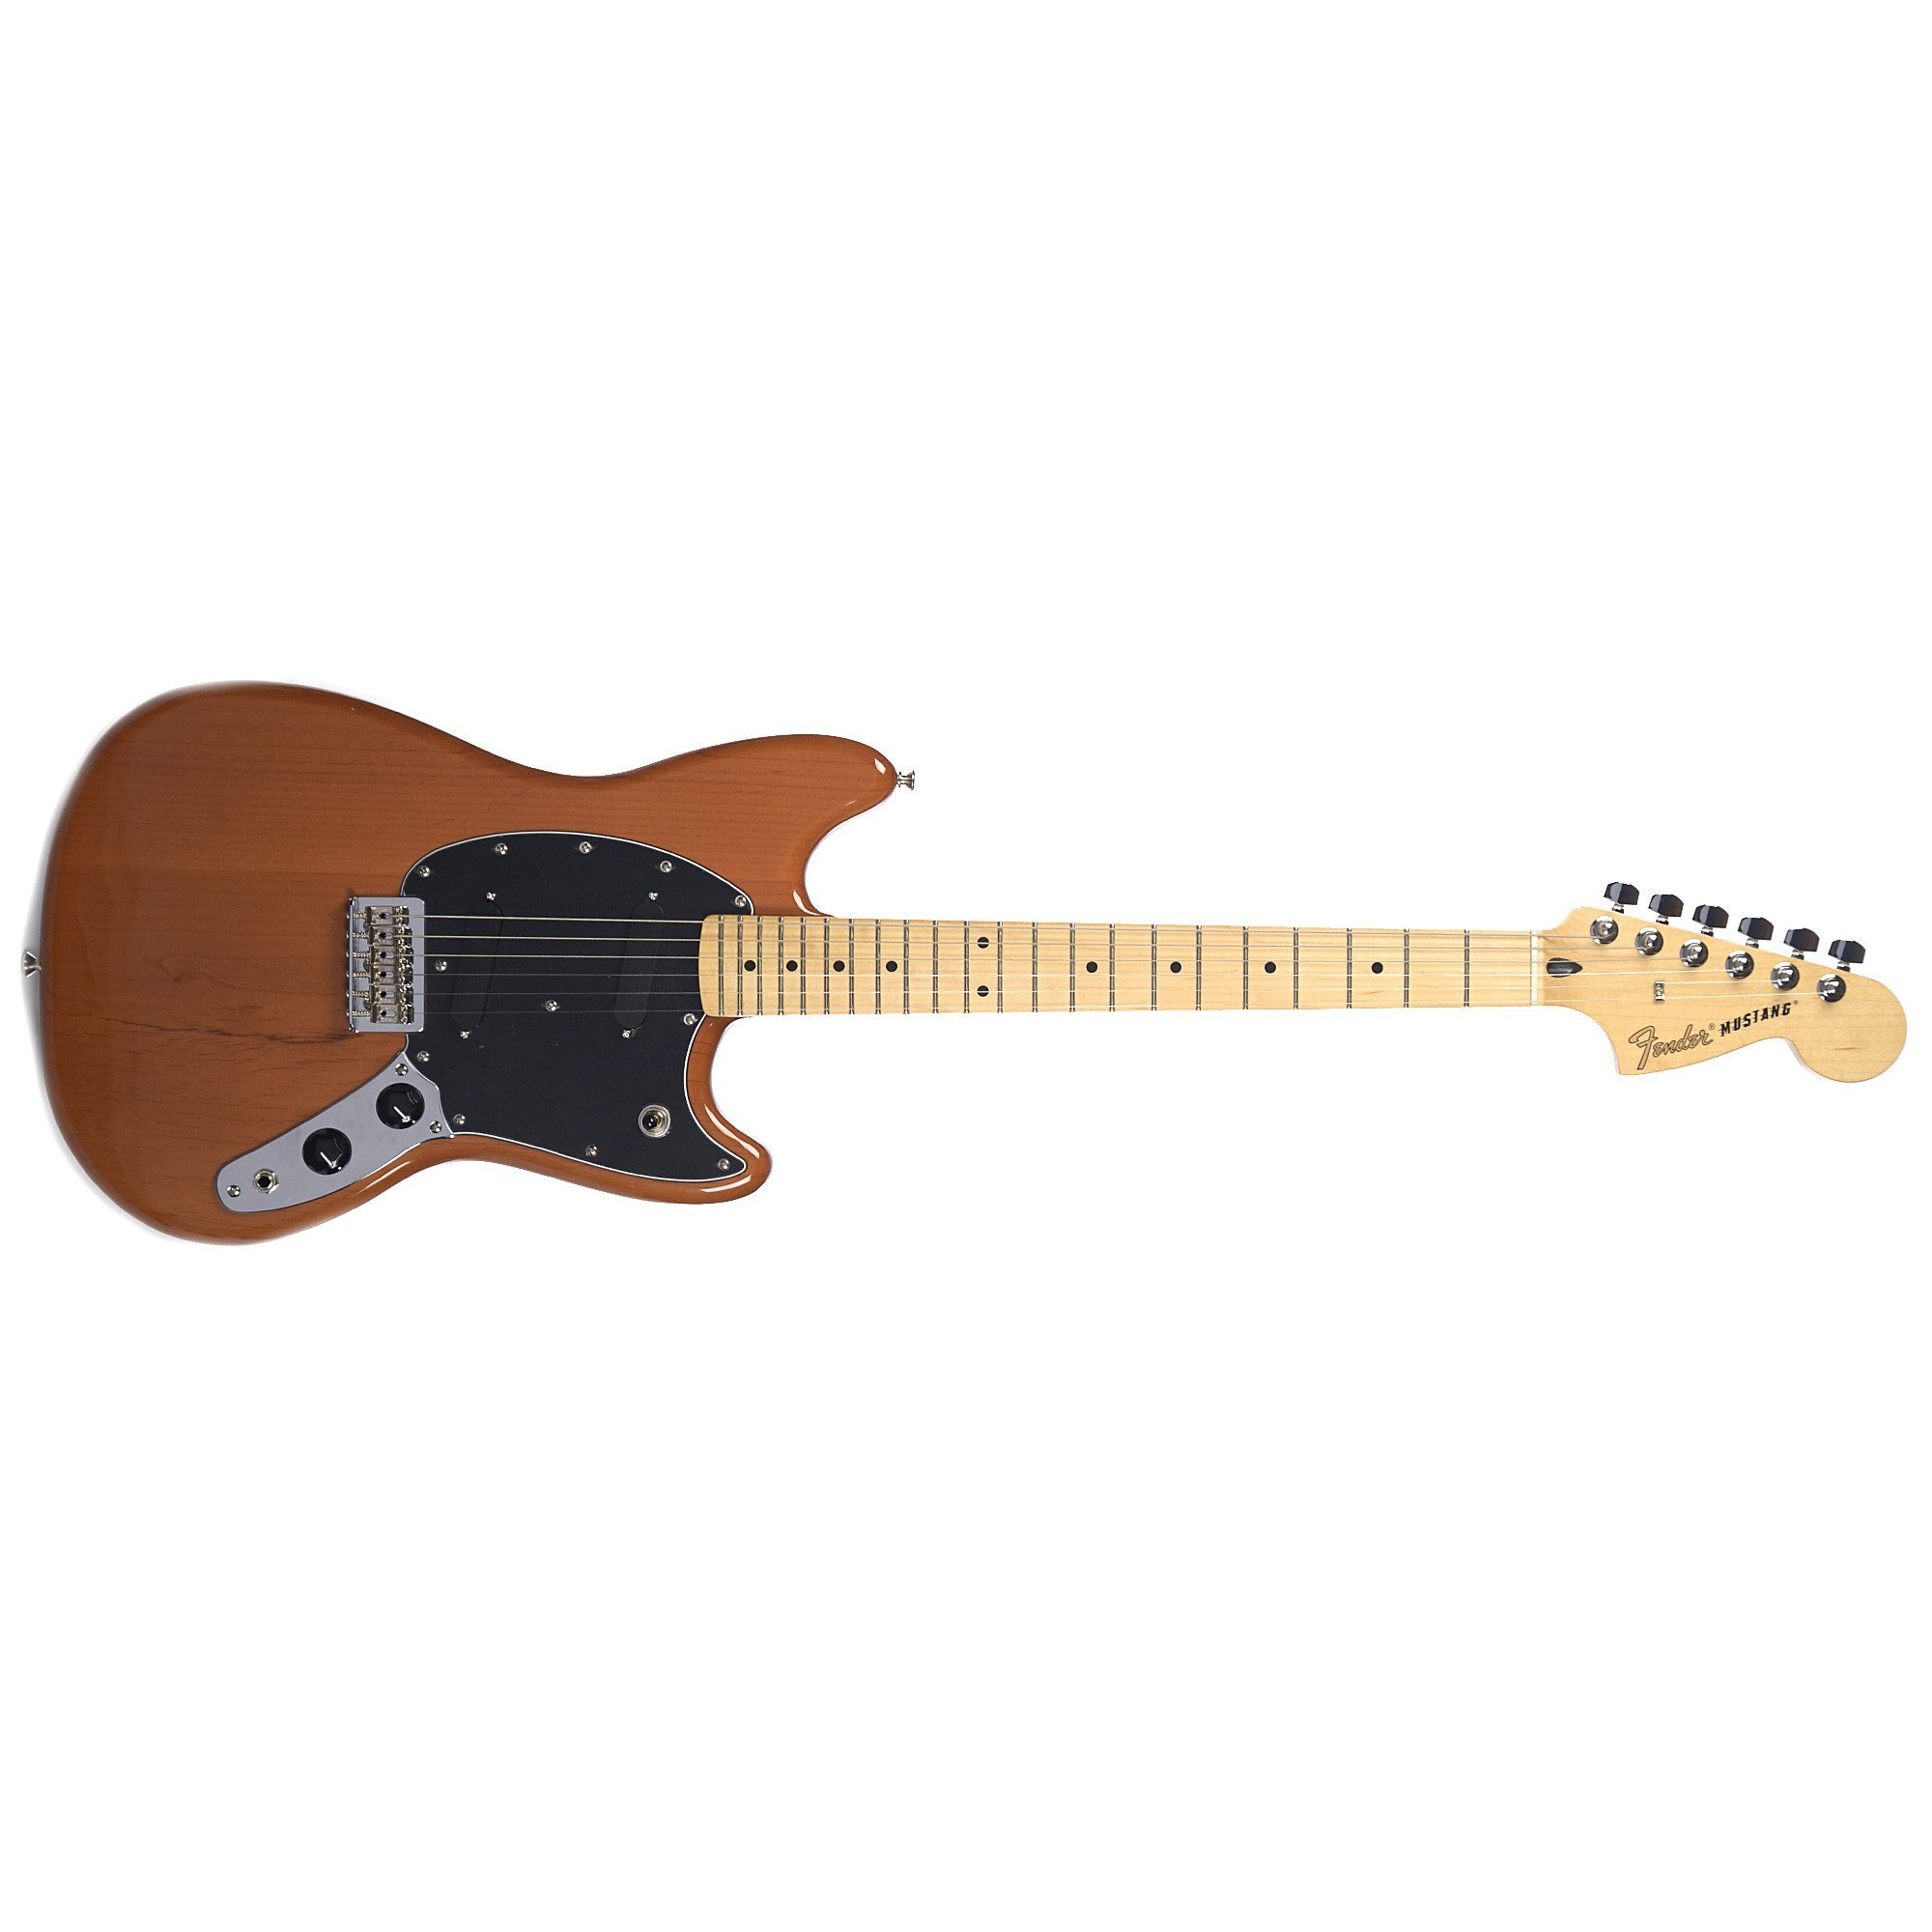 Cheap Fender Offset Series Mustang MN Faded Mocha FSR Limited Edition (CME Exclusive) Black Friday & Cyber Monday 2019